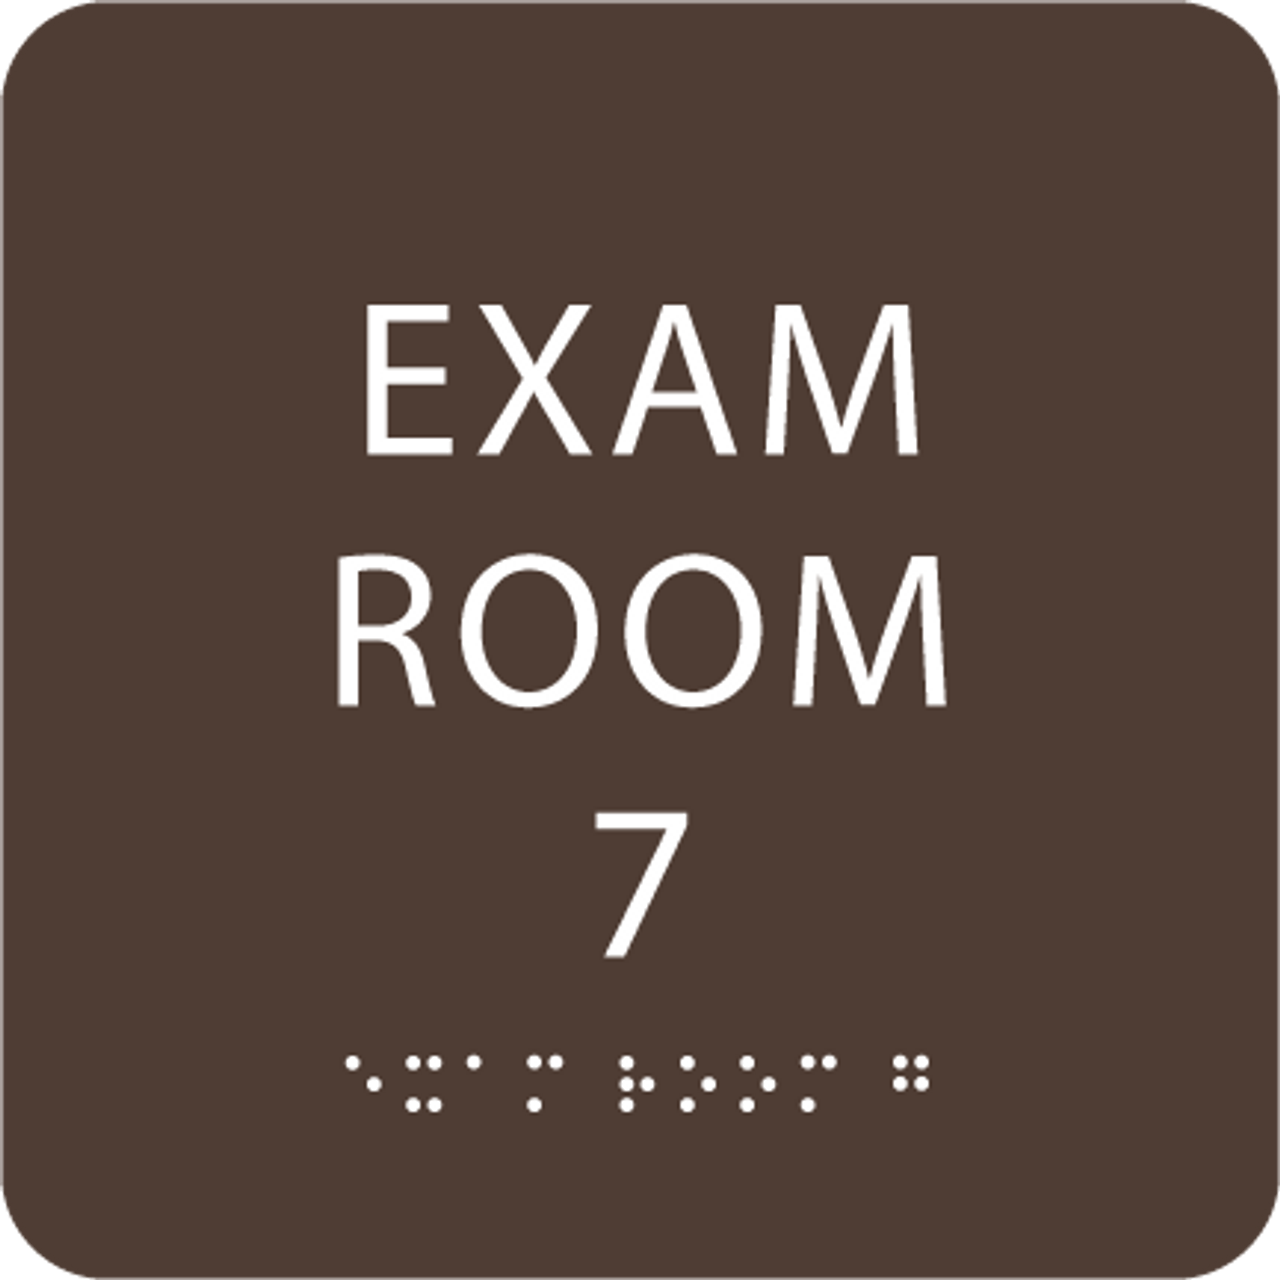 Brown Exam Room 7 Sign w/ ADA Braille